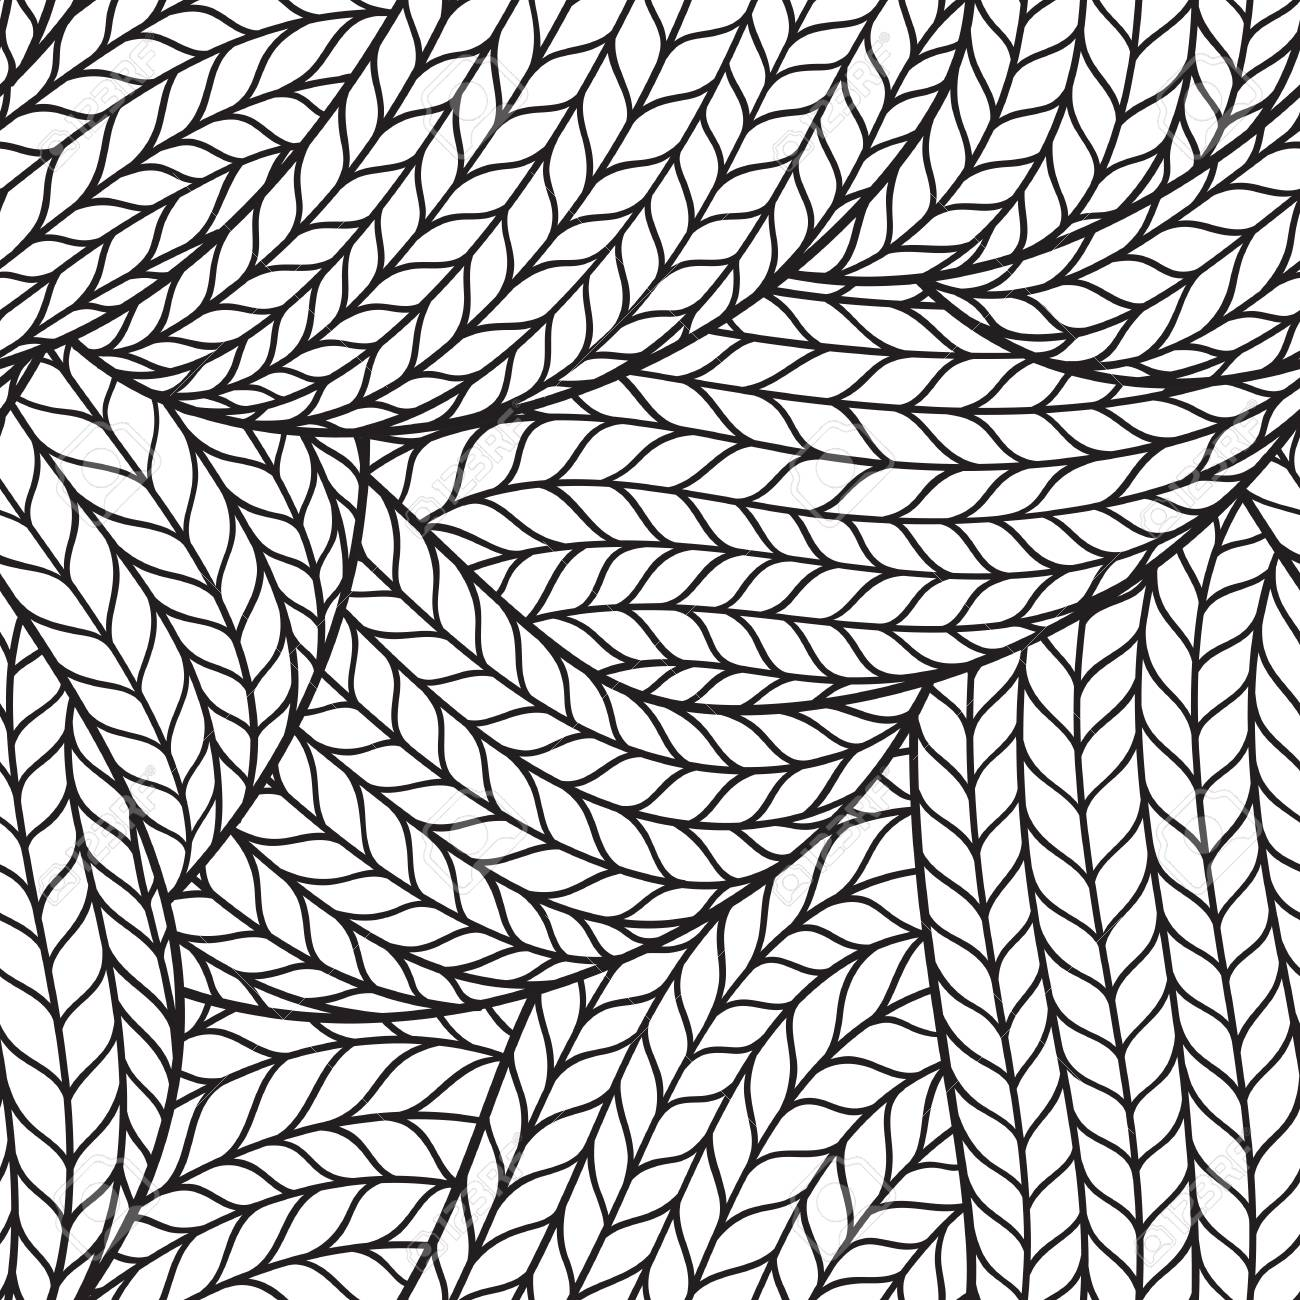 1300x1300 Abstract Monochrome Hand Drawn Abstract Seamless Pattern